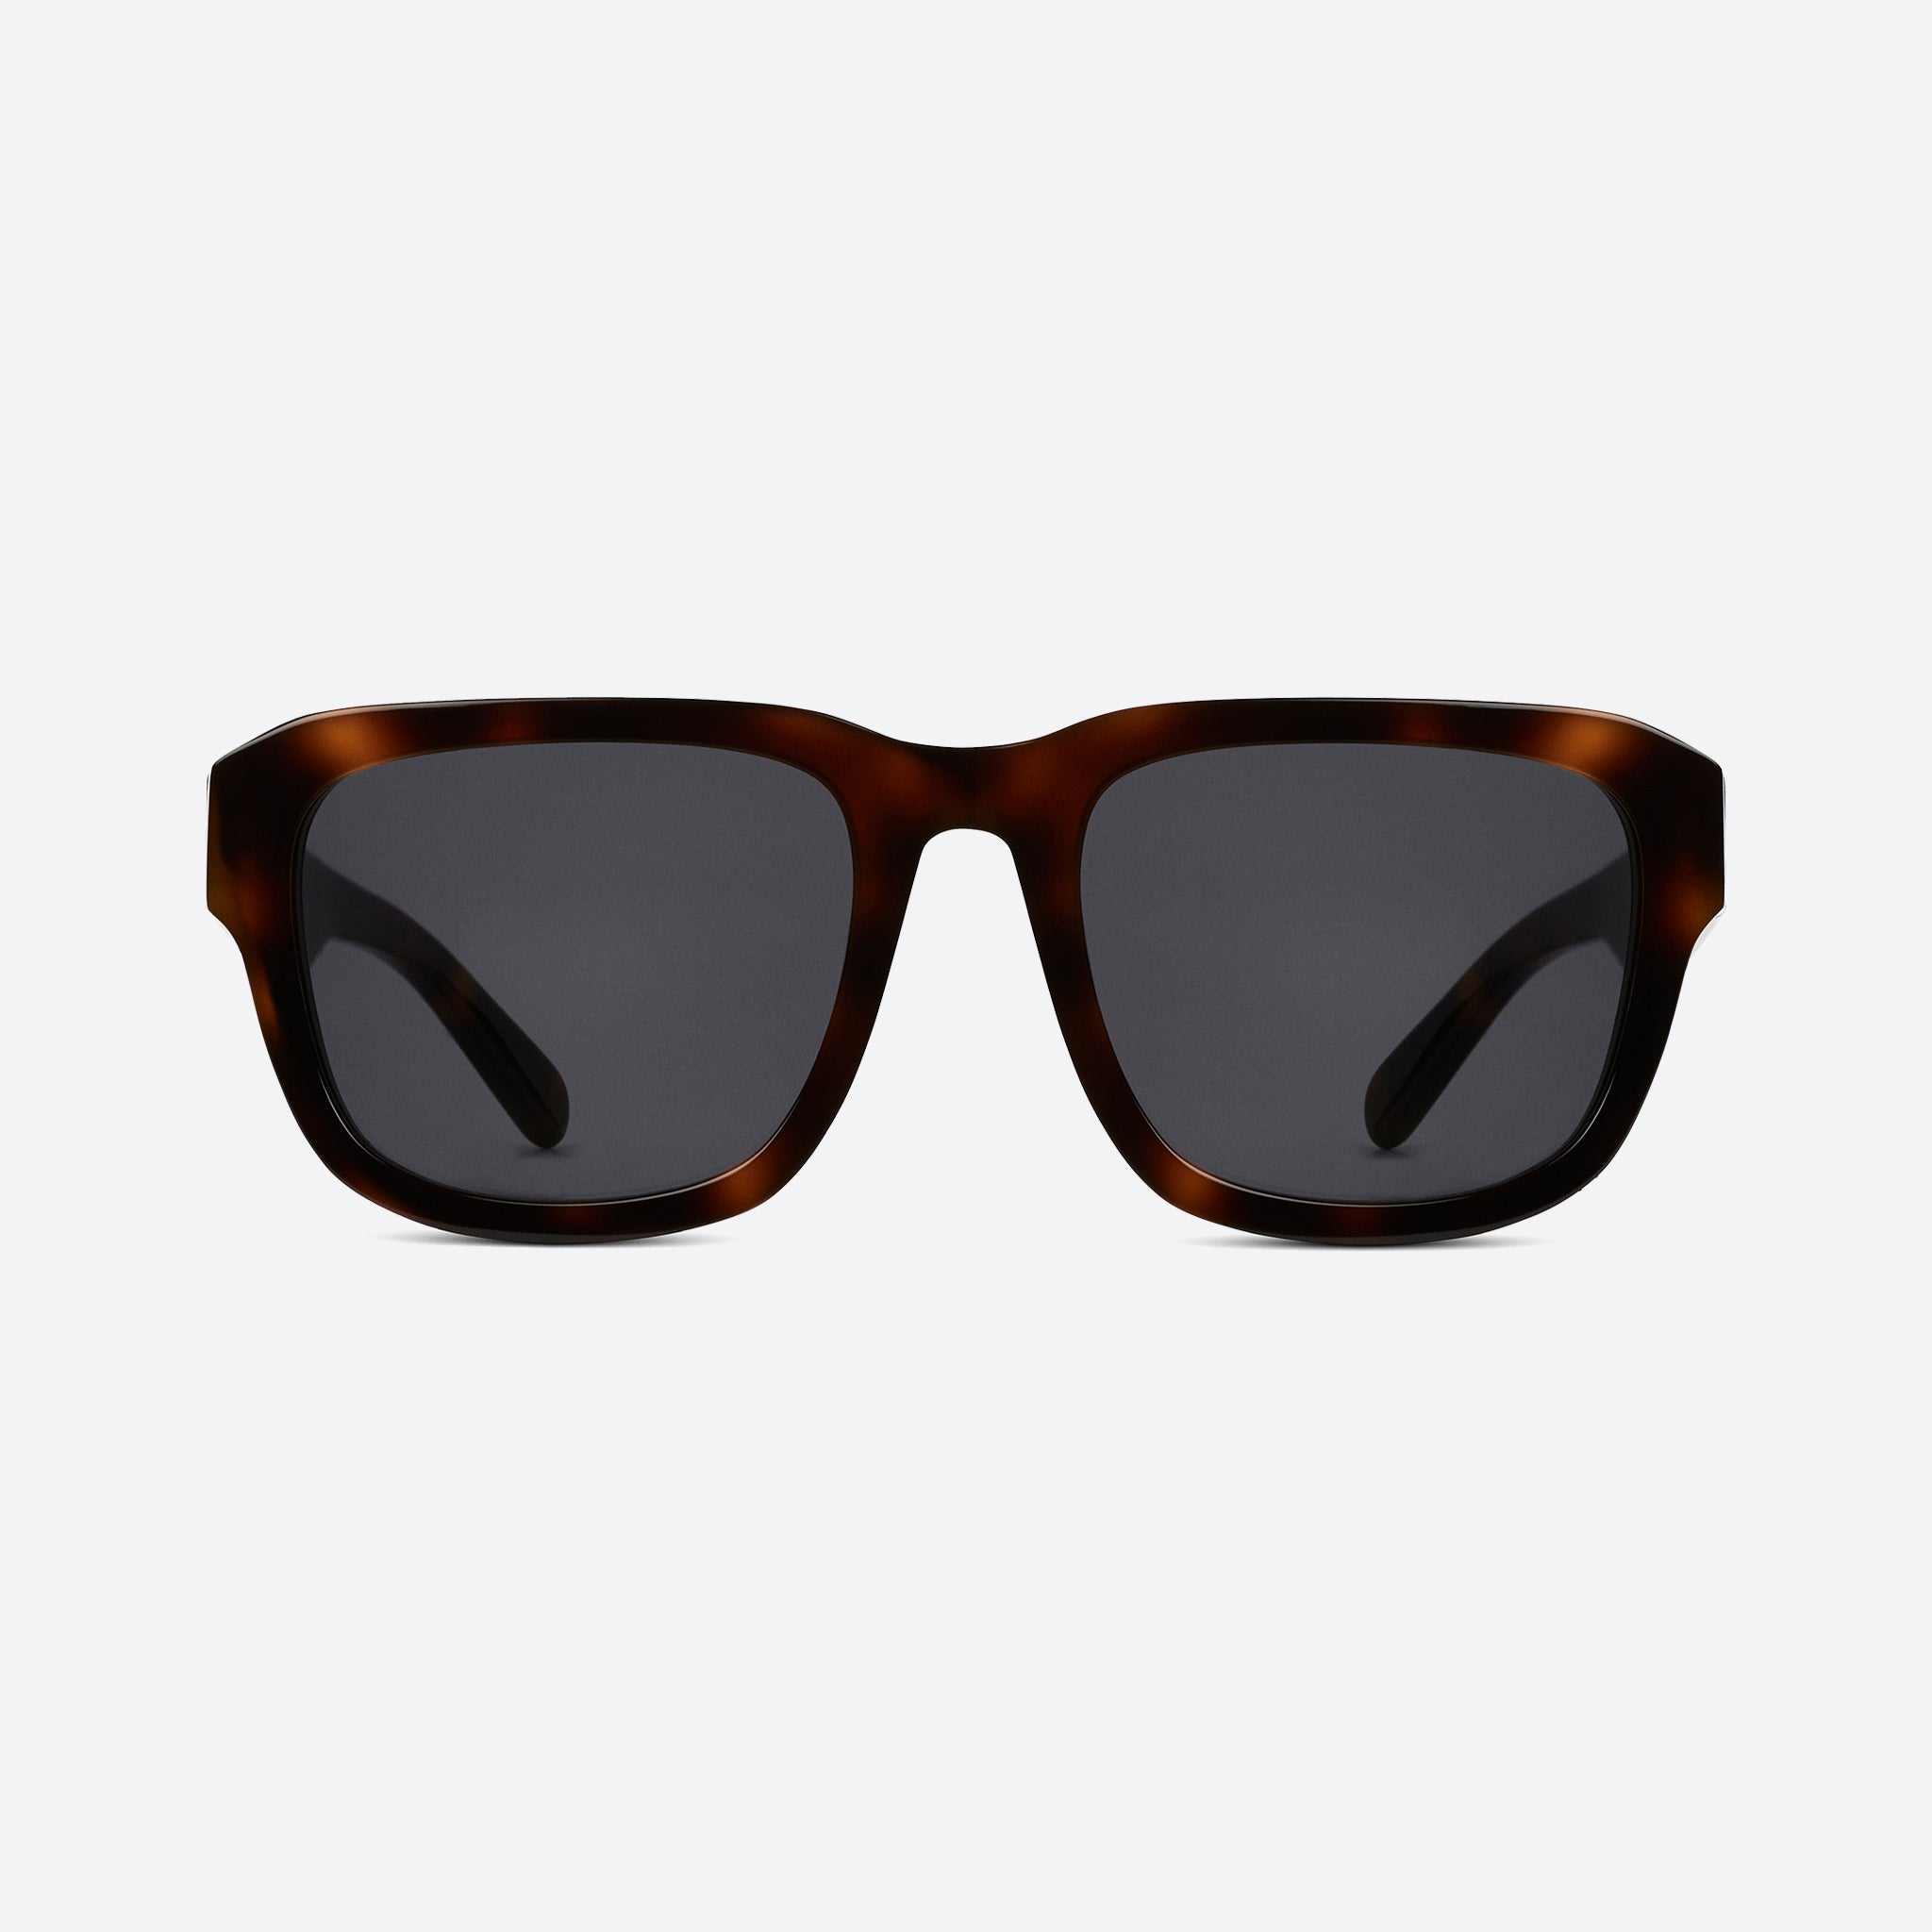 FINLAY London Radnor Dark Tortoise with Grey Lenses